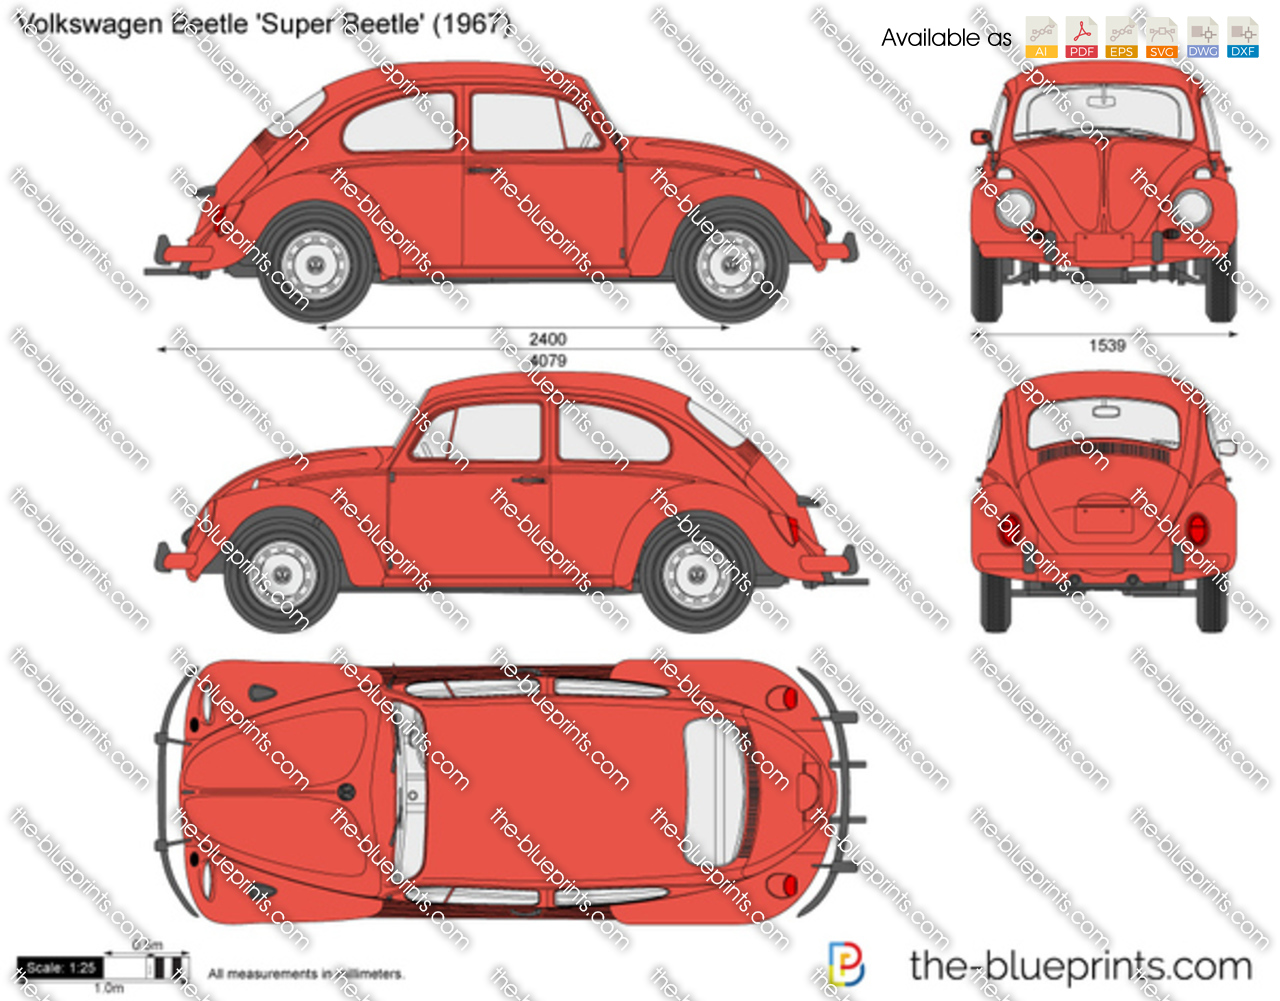 1970 Volkswagen Beetle Wiring Diagram furthermore Inspired By Porsche 911 Gt3 Rs Vwvortex Beetle Rs also Viewtopic likewise 1955 Chrysler Windsor Deluxe Series photo also Wiringt1. on 1974 super beetle engine